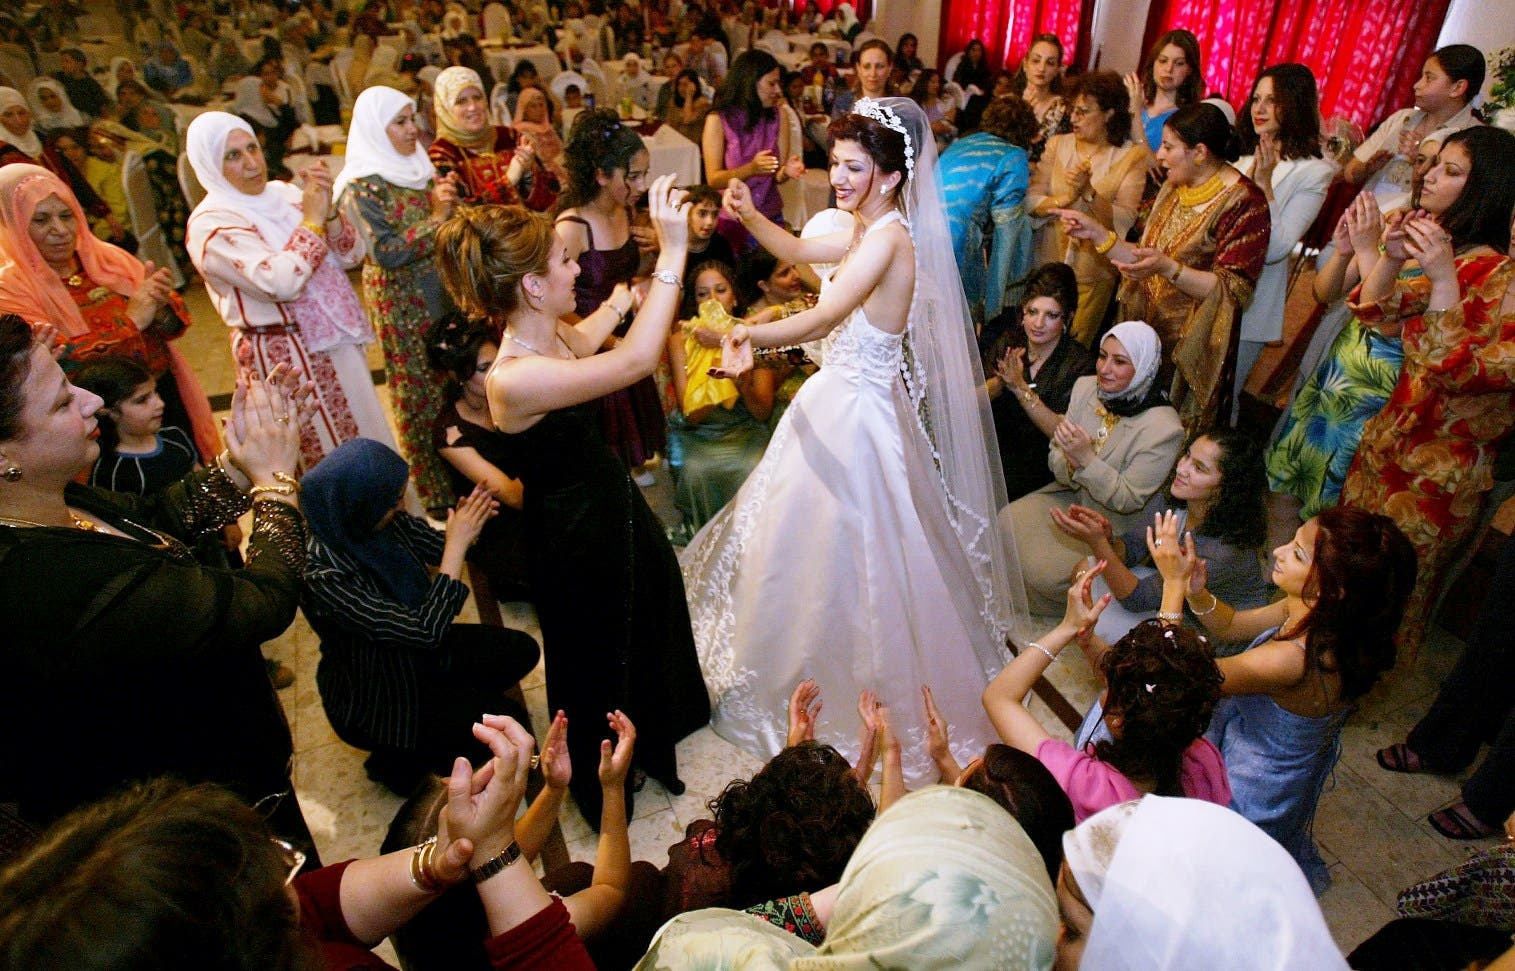 Arranged marriages have not always been the preserve of the Muslim world: Christians in the West once practiced this 